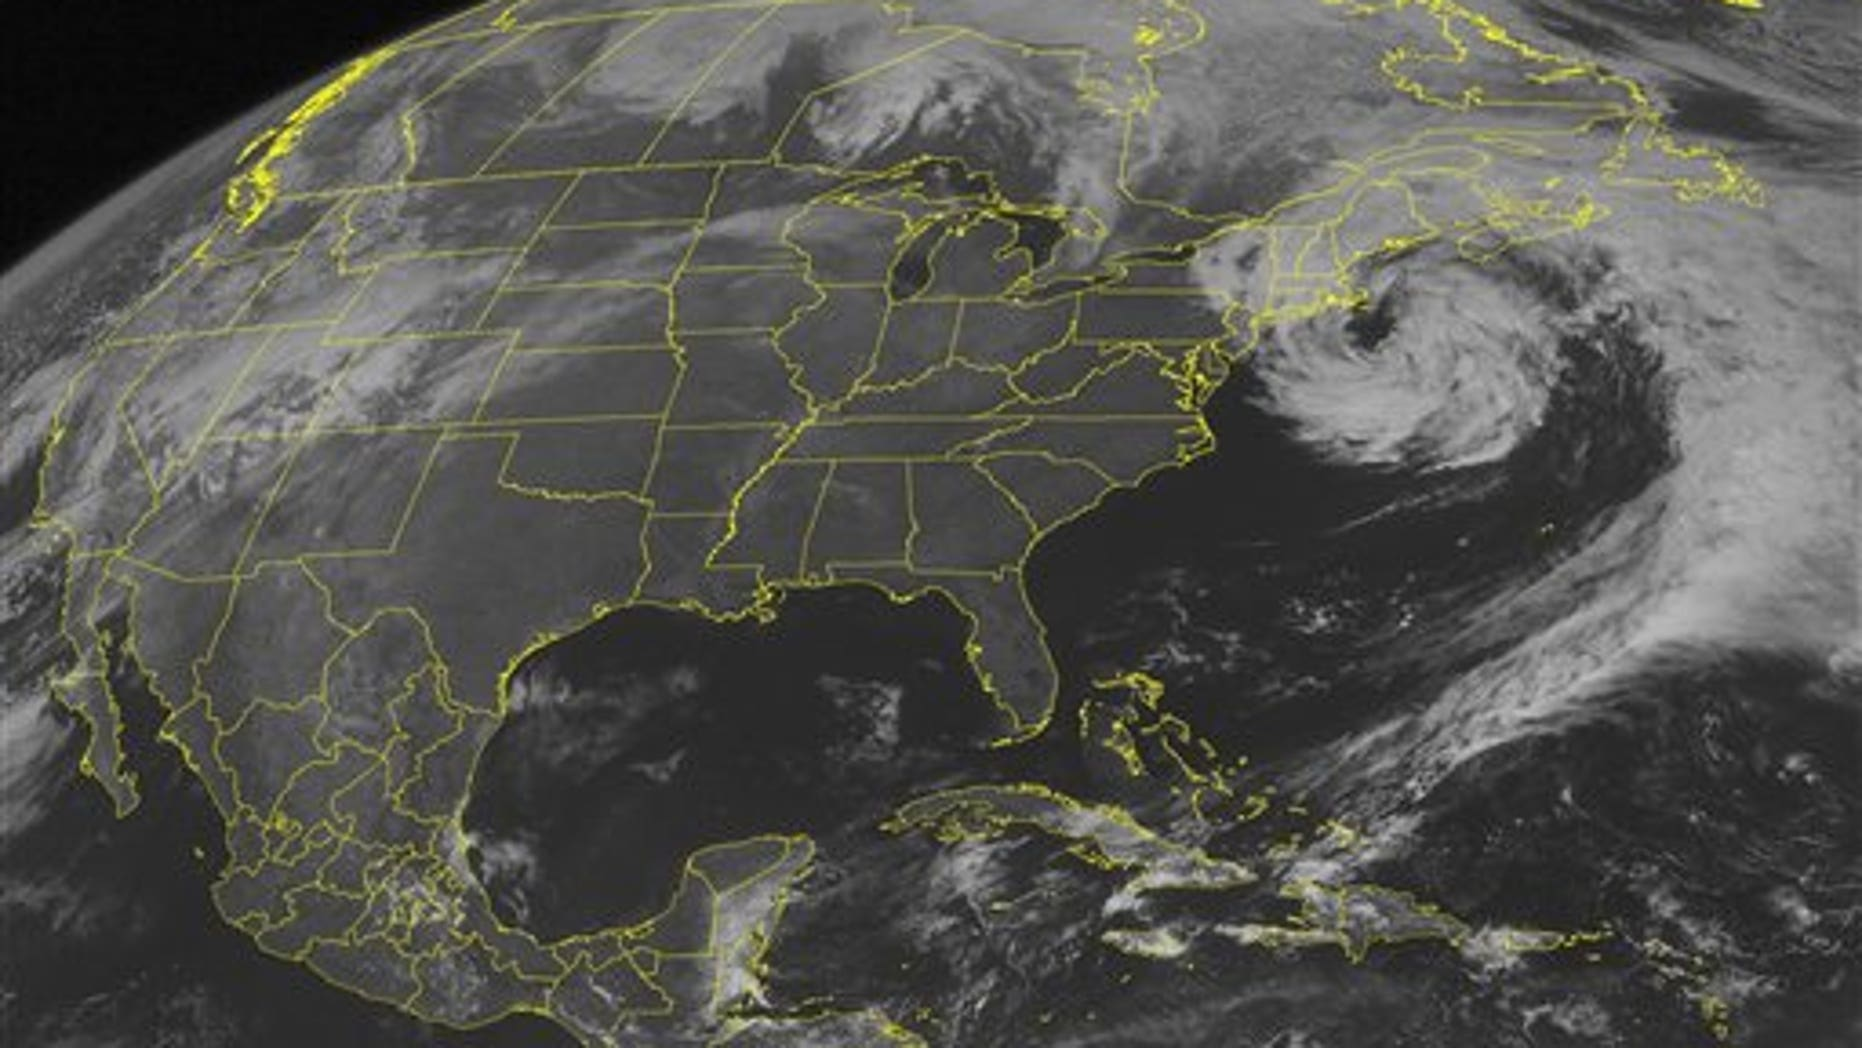 March 31, 2010: This NOAA satellite image shows mid-level clouds swirling over the Northeast and curving into the western Atlantic Ocean as a weakening low pressure system remains off the New England coast.